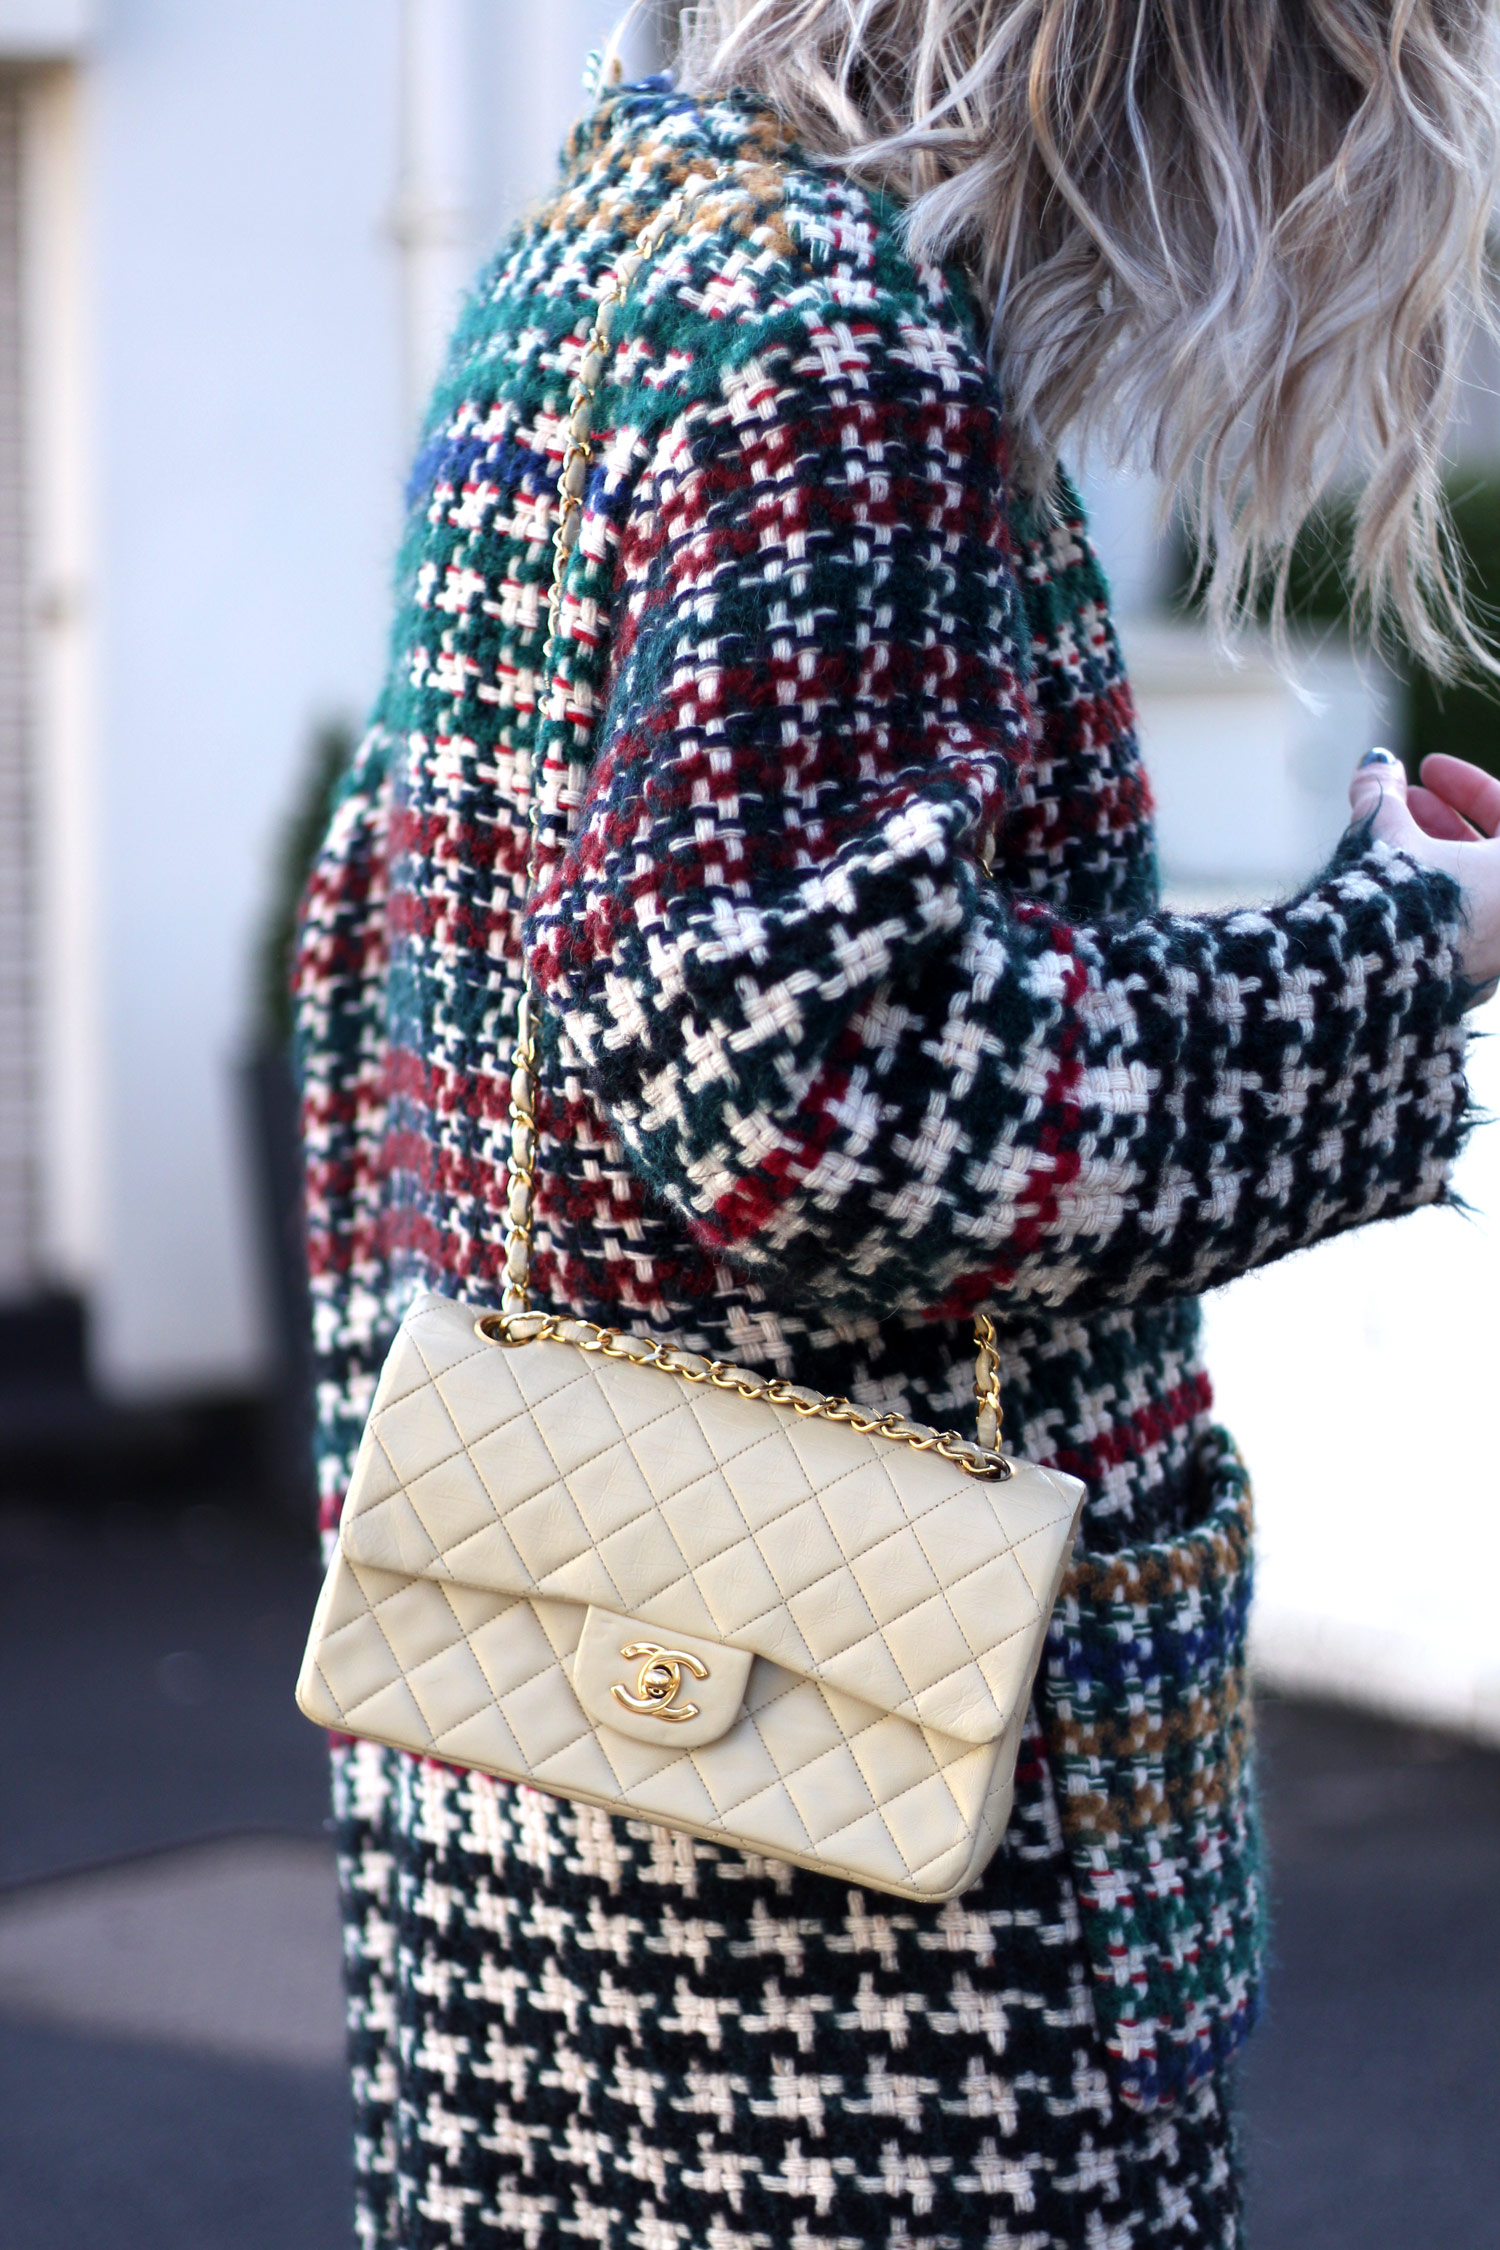 isabel-marant-diana-coat-vintage-cream-chanel-bag-12